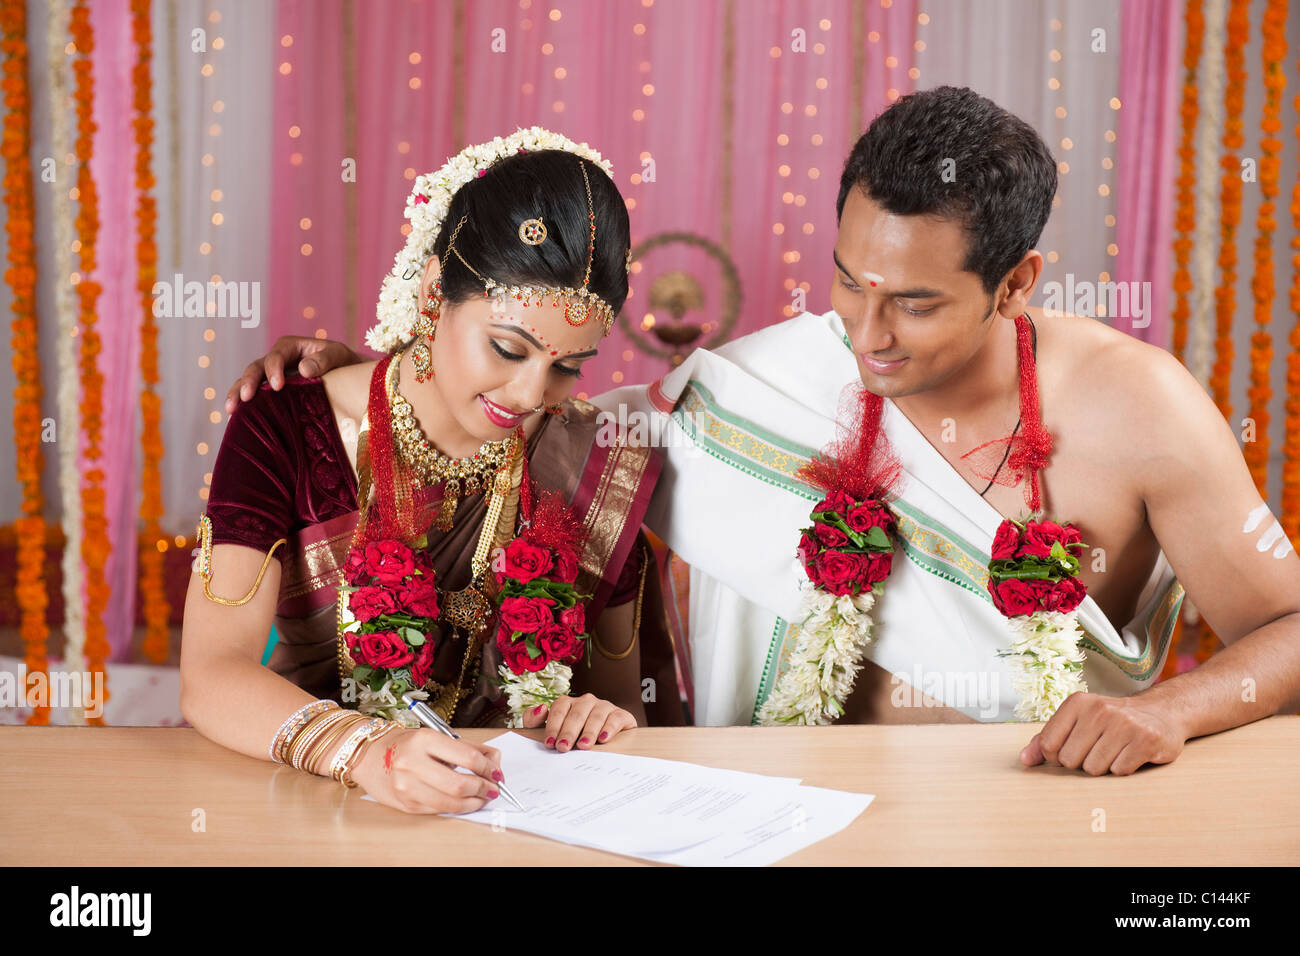 Couple de signer un certificat de mariage Photo Stock